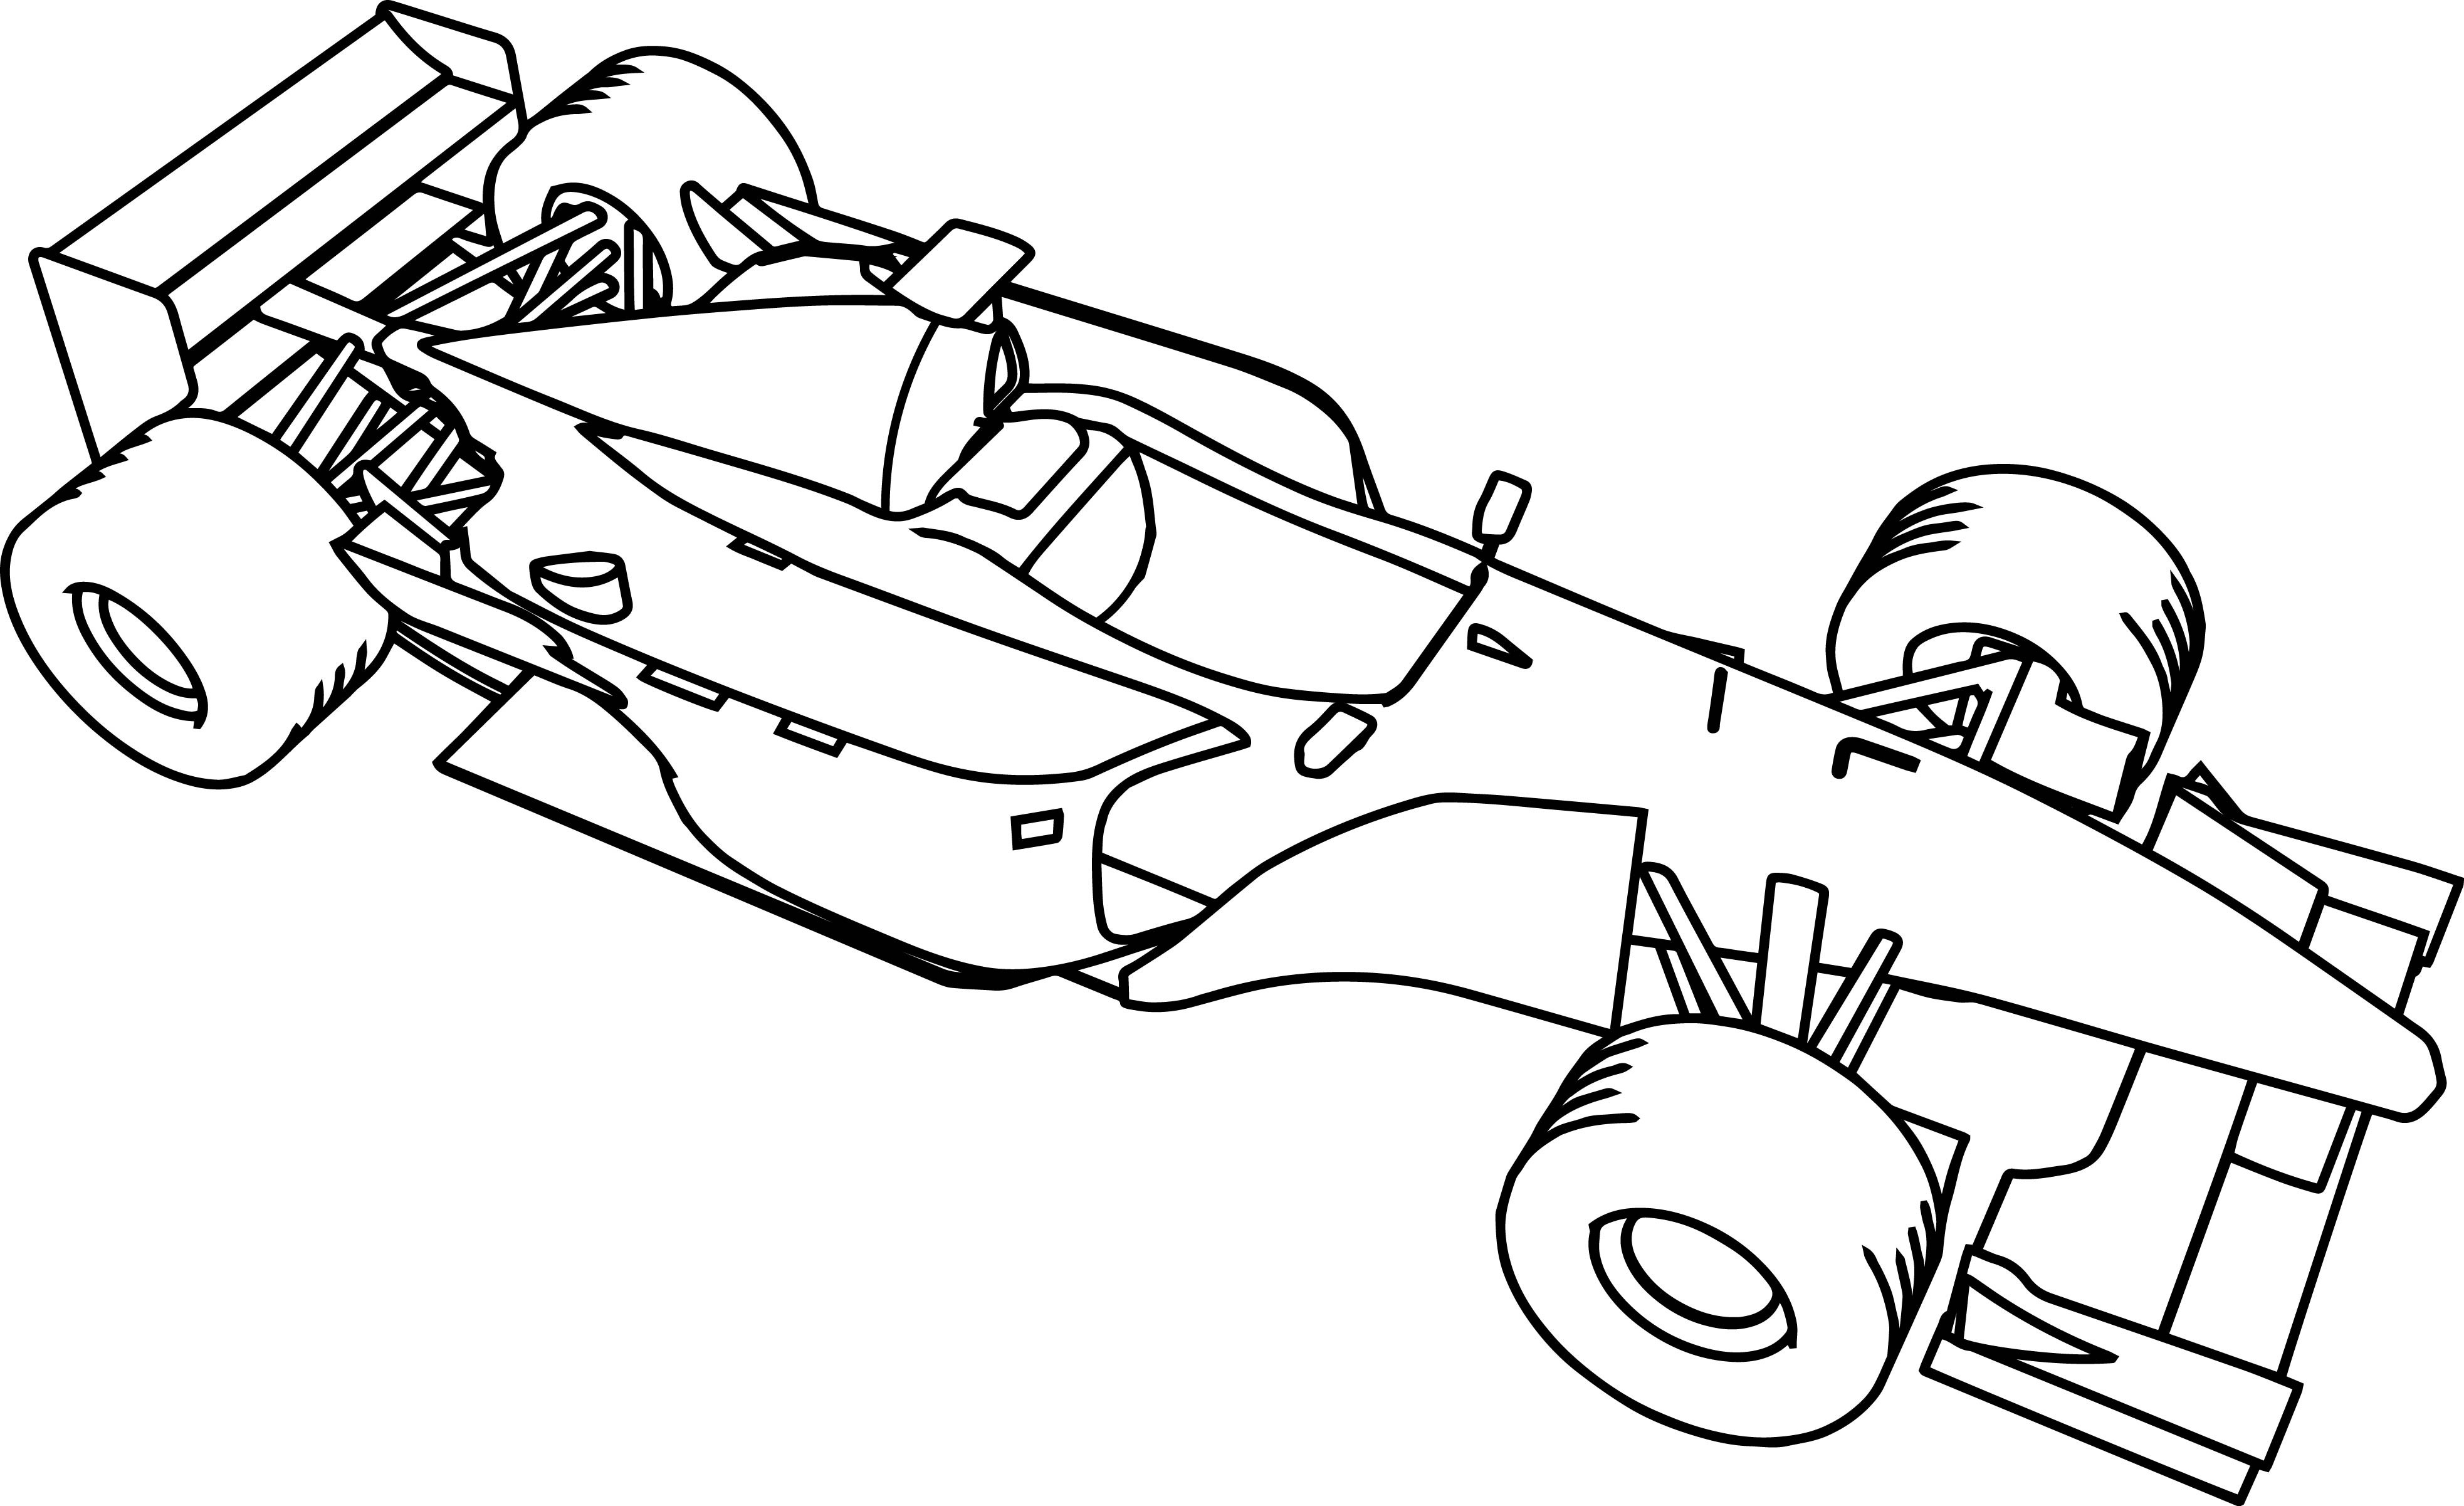 3931x2402 Super Car Mclaren F1 Lm Coloring Page Best Of Drawn Bmw Coloring